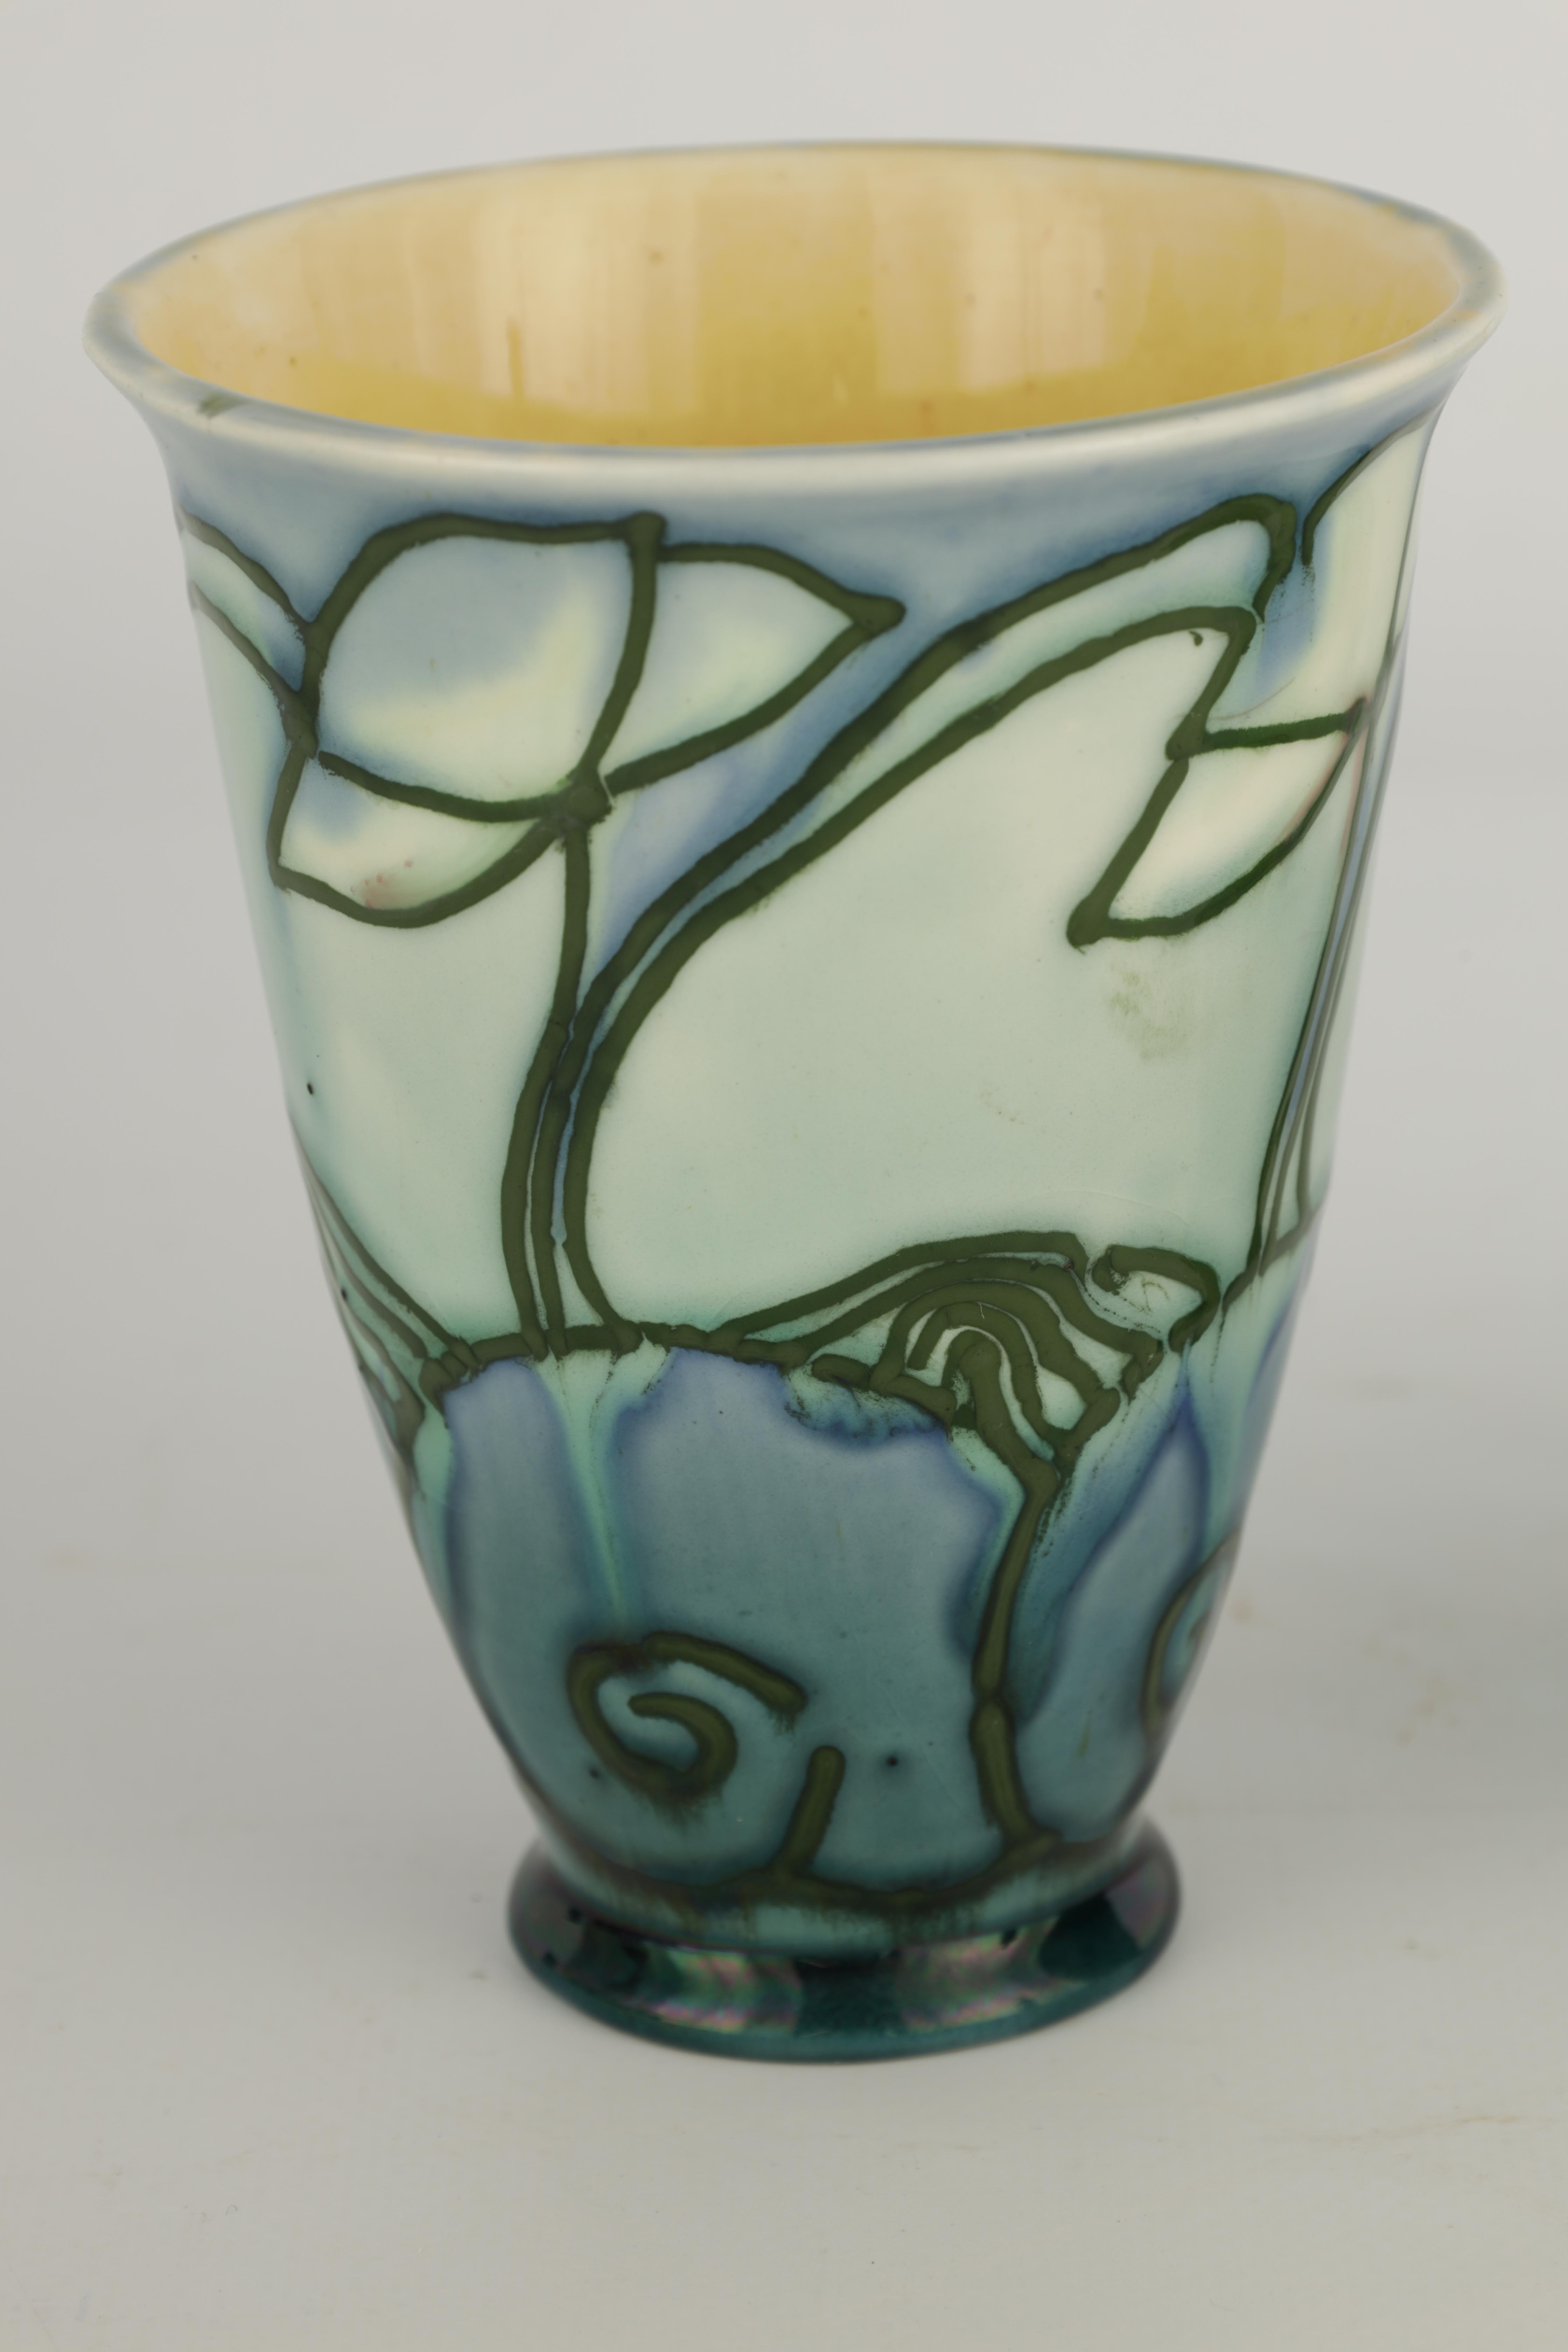 A PAIR OF MINTON LTD SECESSIONIST WARE TAPERING BEAKER VASES tube lined and decorated with - Image 3 of 6